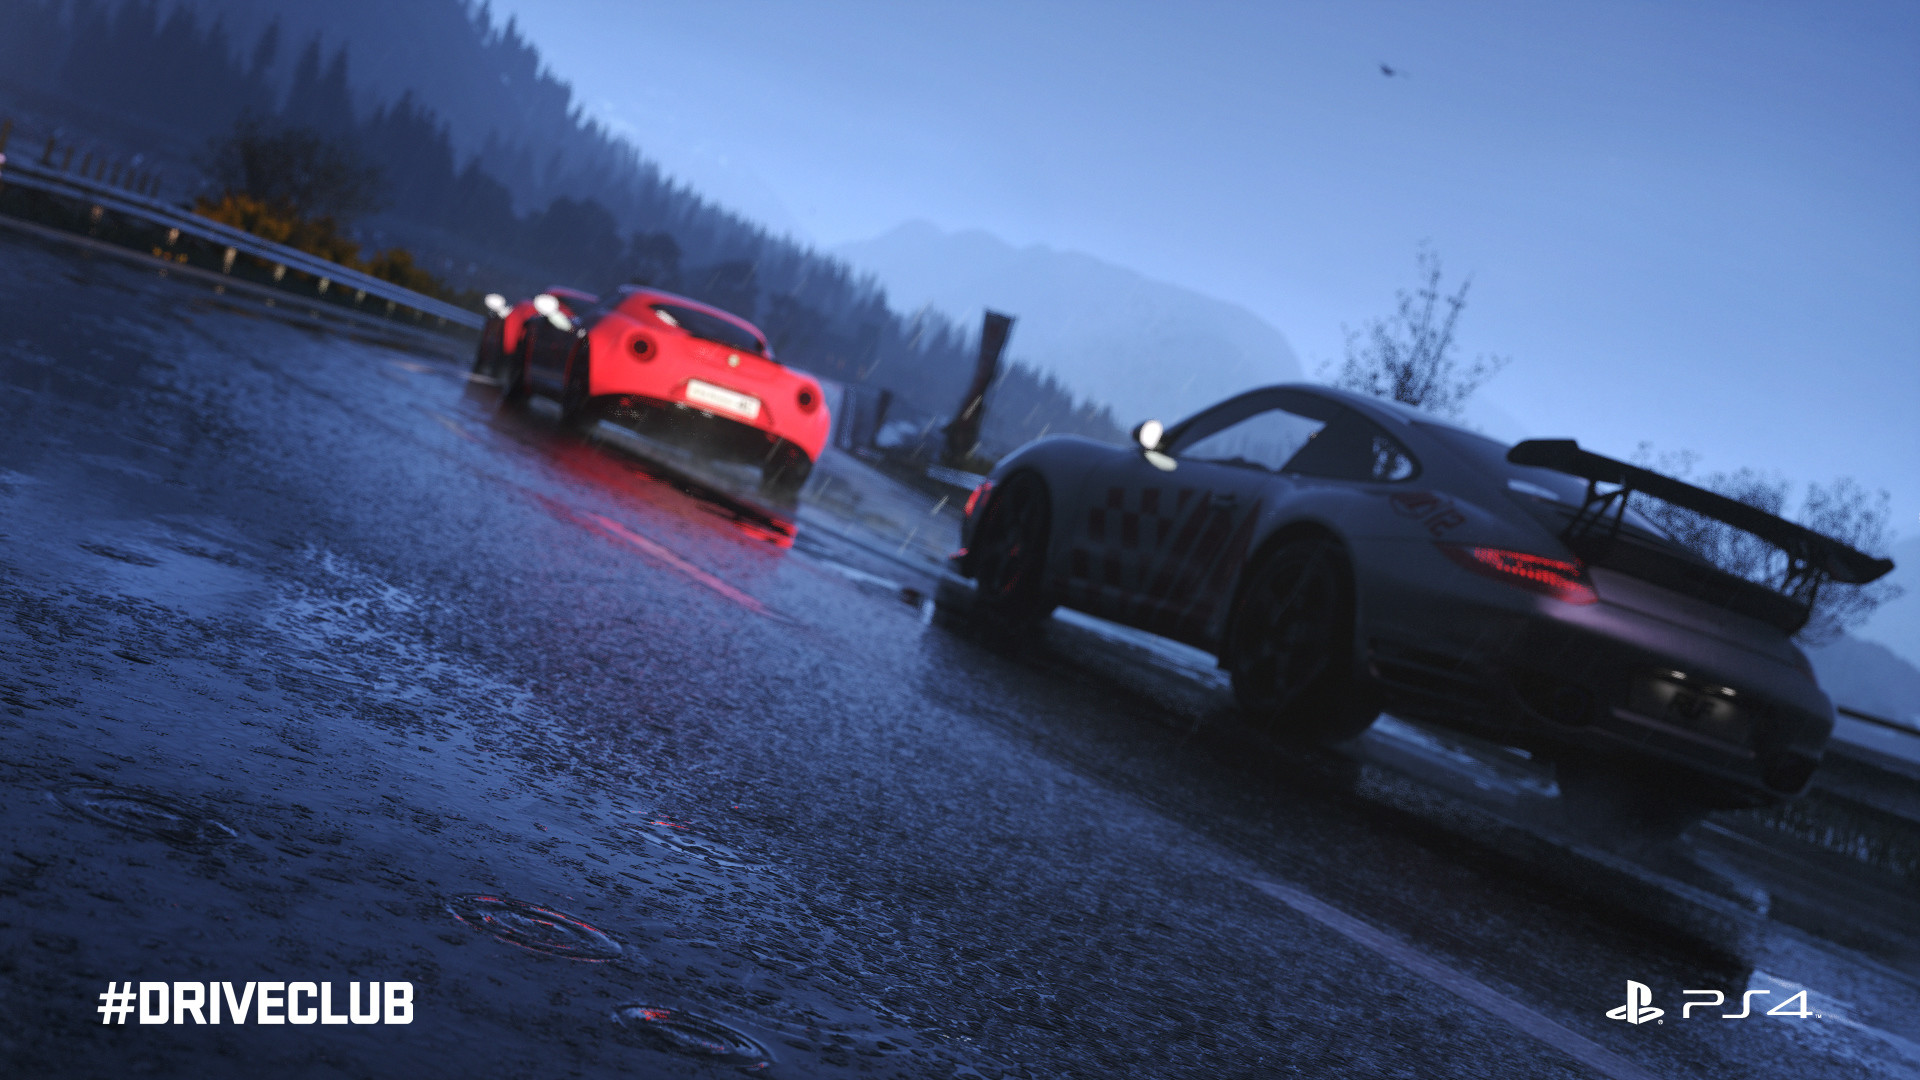 Driveclub in game